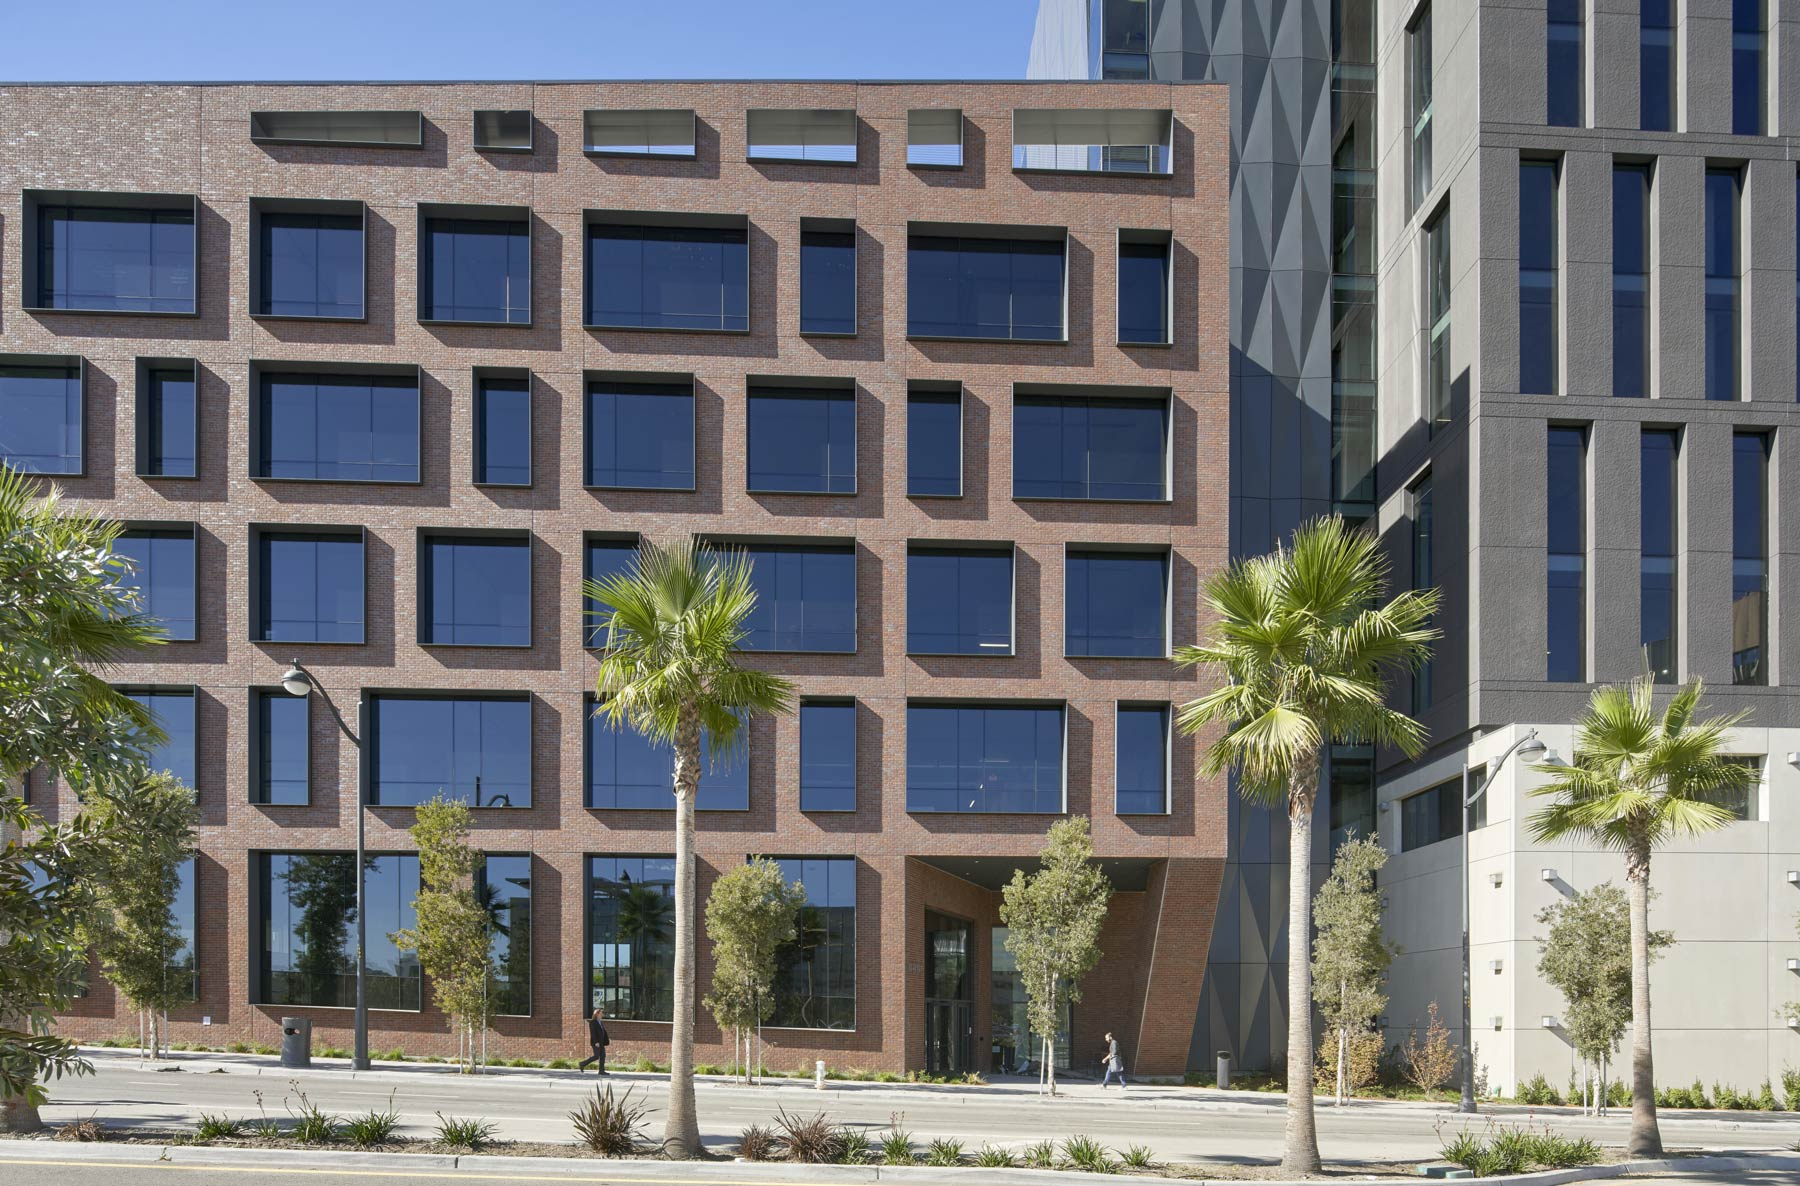 Kilroy Realty Corporation - The Exchange on 16th Street